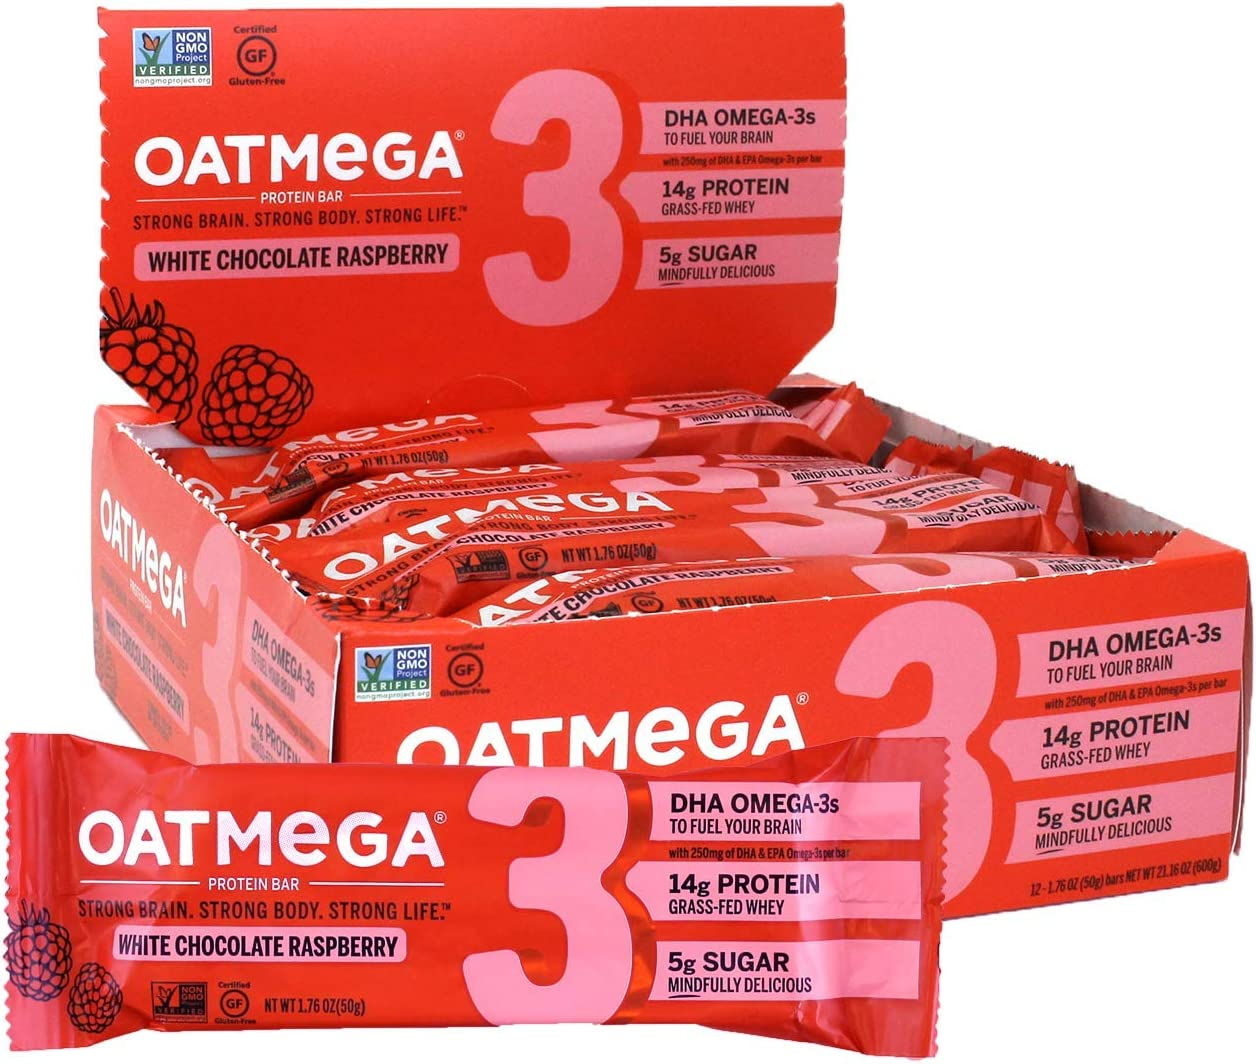 Oatmega Protein Bars, White Chocolate Raspberry, Healthy Snacks Made with Omega-3 and Grass-Fed Whey Protein, Gluten Free Protein Bars, 1.8oz (12 Count)